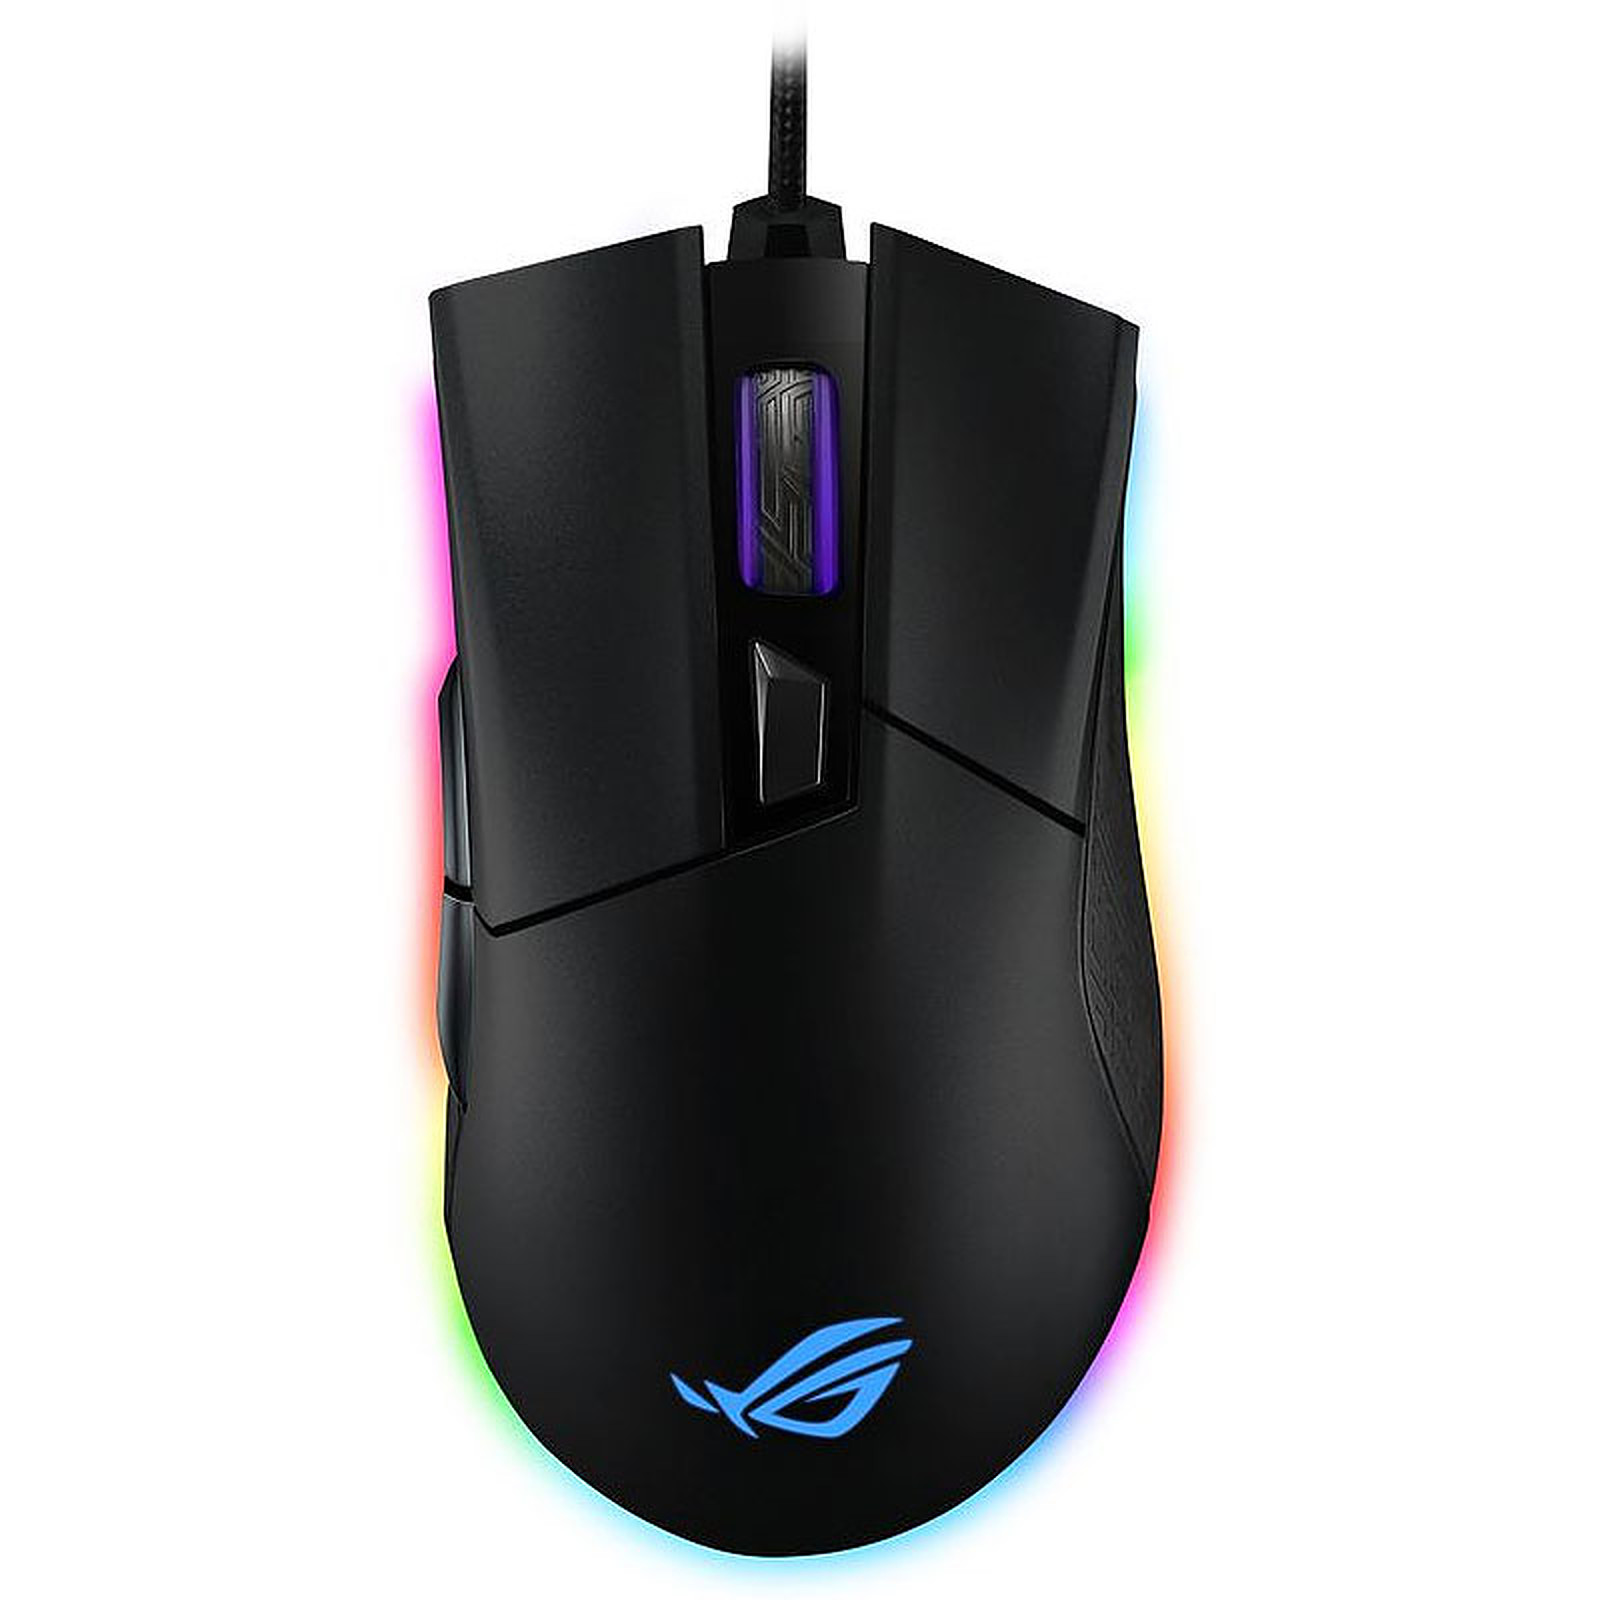 ASUS ROG Republic of Gamers Gladius II Origin